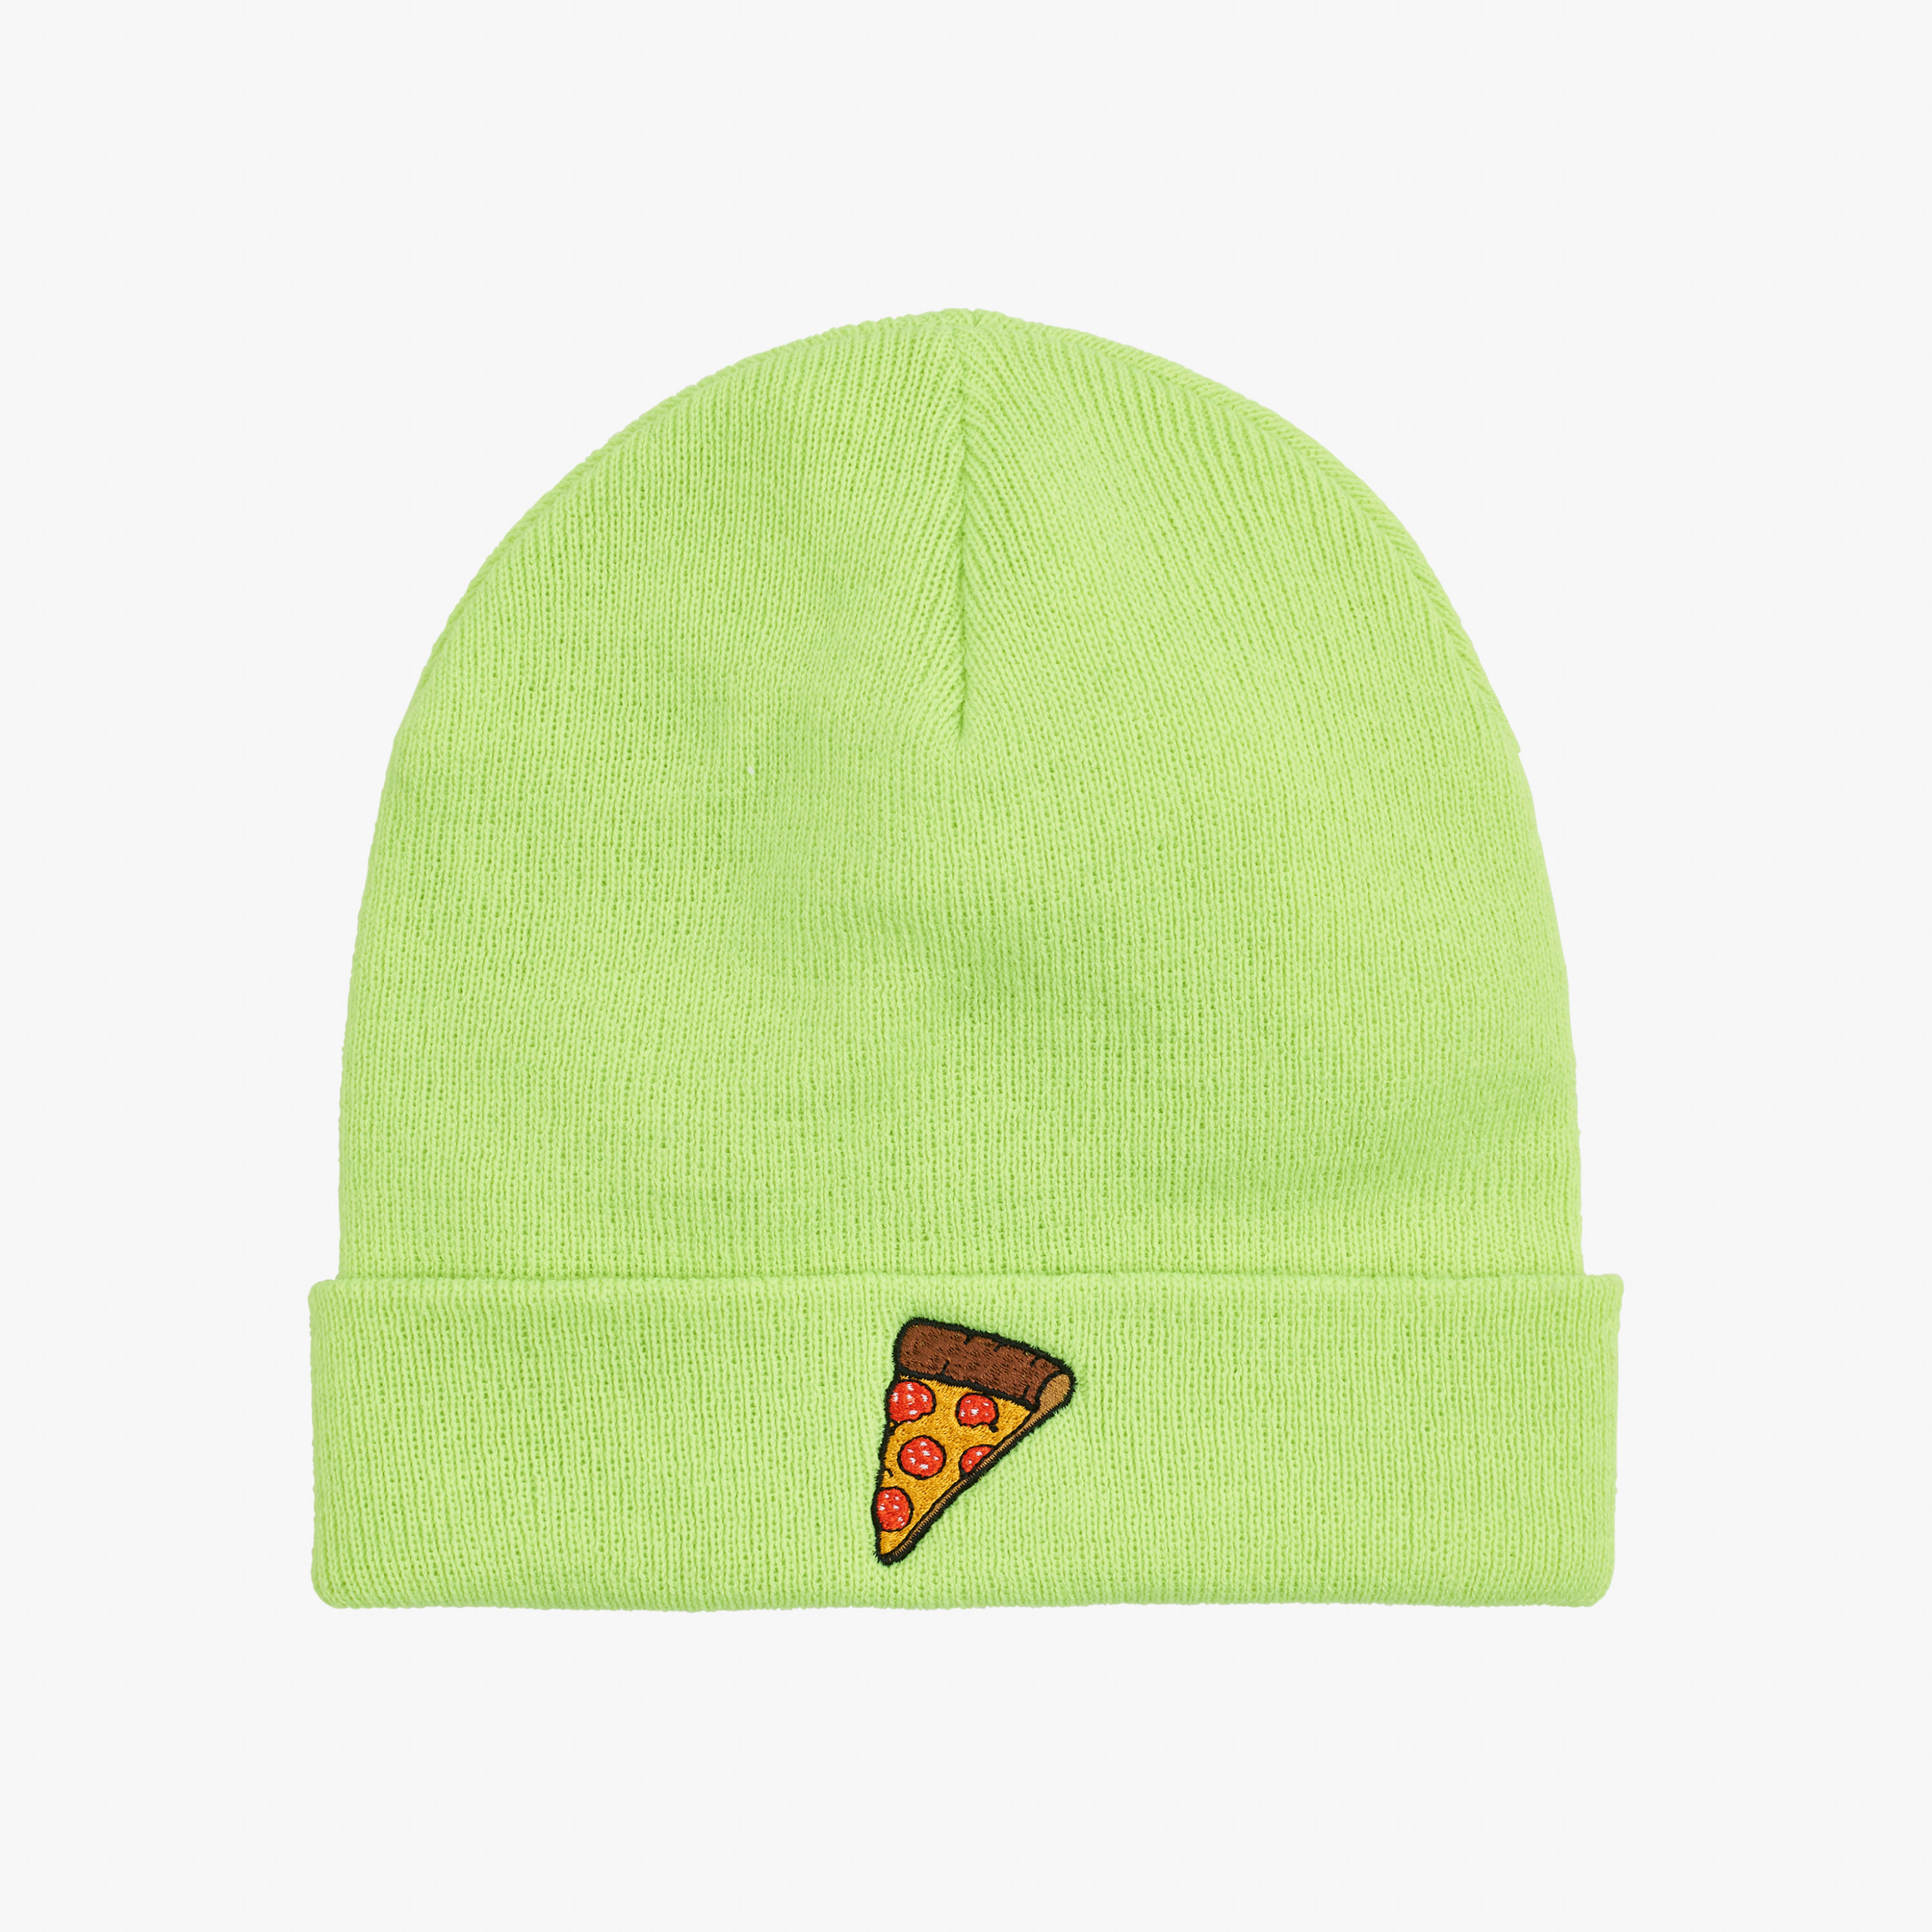 CAP BASIC PATCH GIALLO FLUO